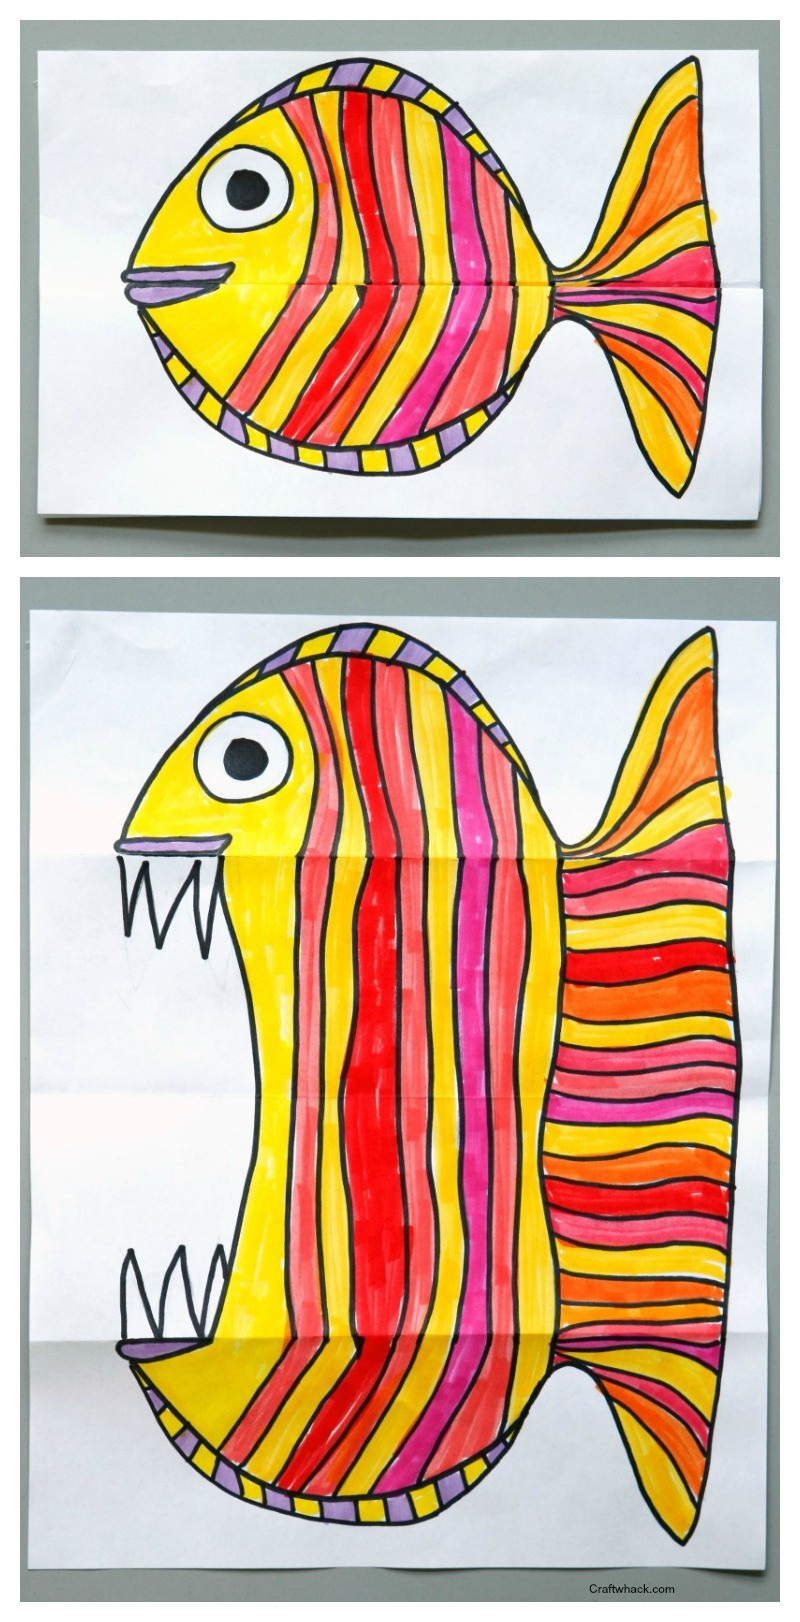 Best ideas about Art Projects For Kids . Save or Pin Surprise Ferocious Beings Paper Project · Craftwhack Now.